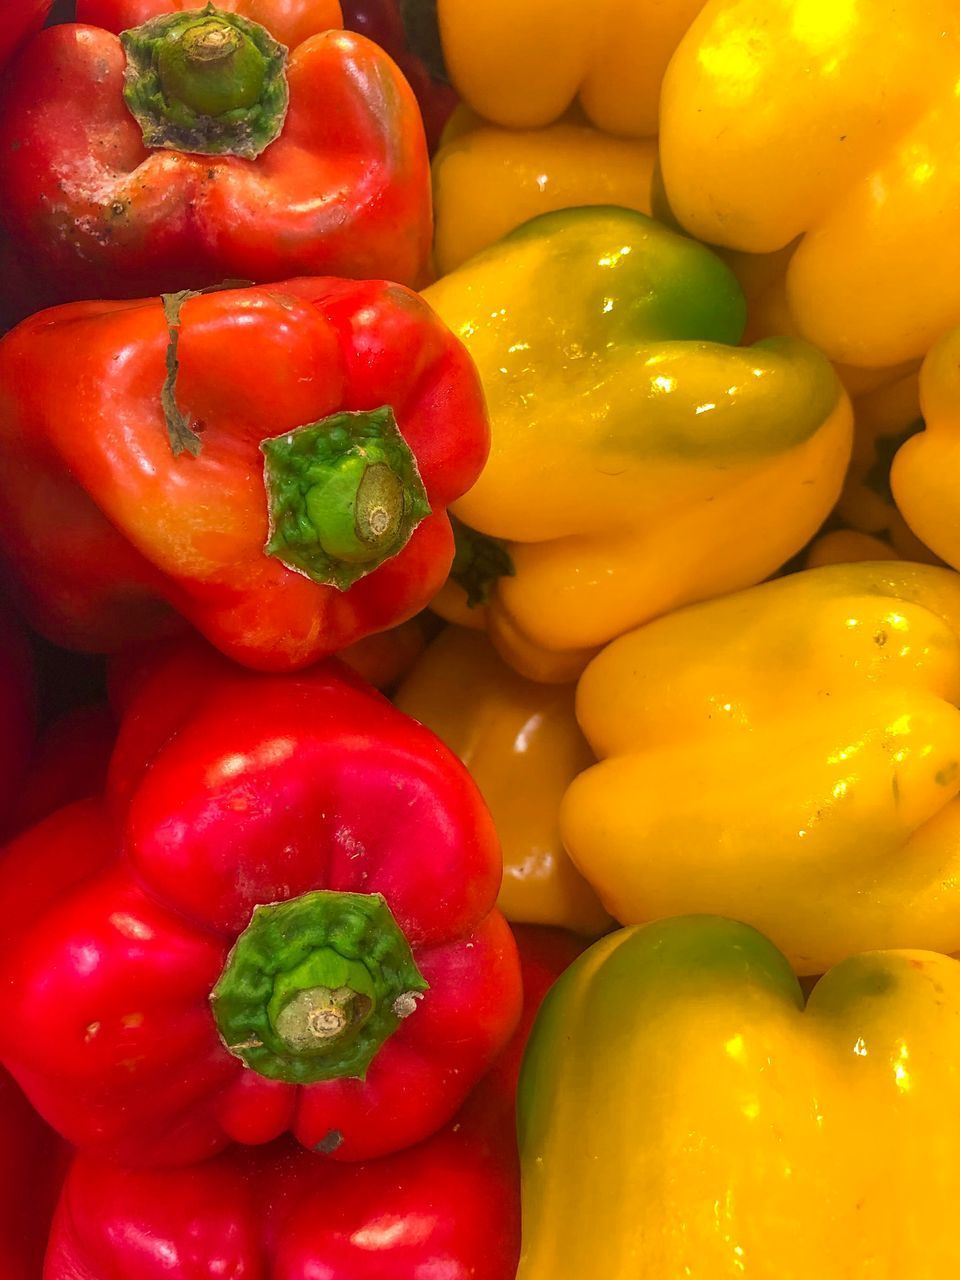 vegetable, food and drink, food, pepper, bell pepper, freshness, wellbeing, healthy eating, large group of objects, red, backgrounds, still life, full frame, red bell pepper, for sale, close-up, no people, market, raw food, retail, paprika